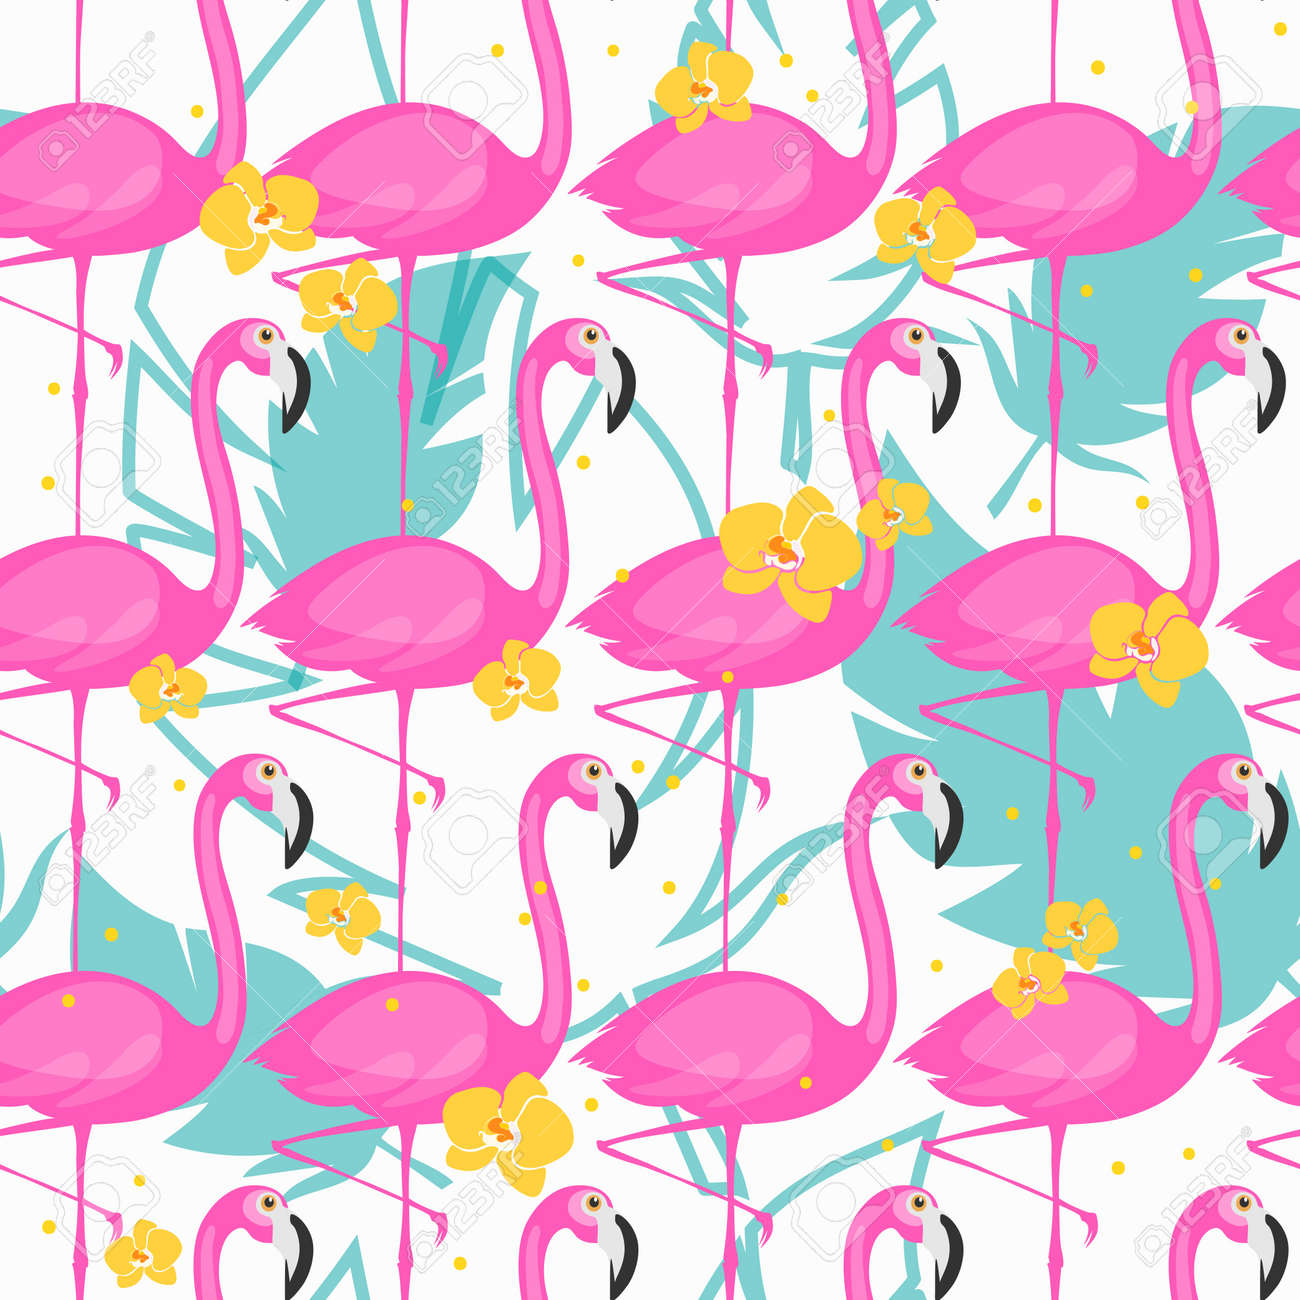 Pink Flamingos Photo Background 8x6.5ft Photography Backdrops Watercolor Flowers and Leaves Pattern Pink and White Stripes Backdrop Kid Audults Baby Pohoto Portrails Artistic Studio Props